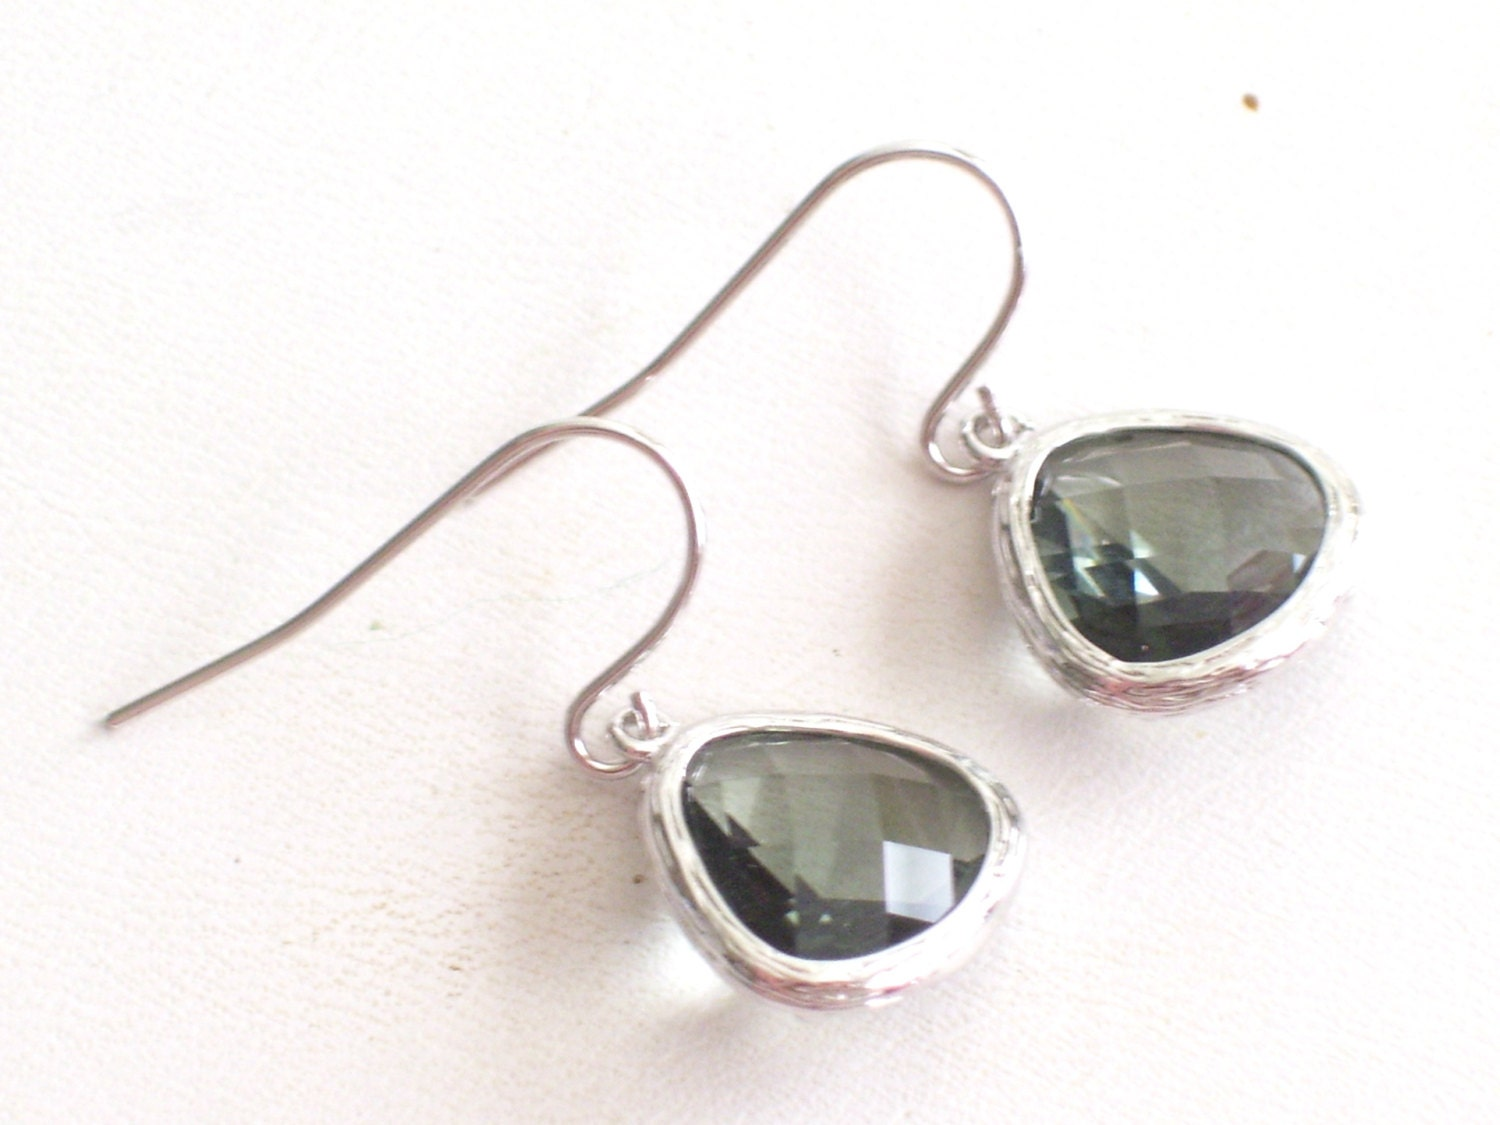 silver circle by hammered handmade earrings drop dangle everyday jewelry simple sterling lizardi